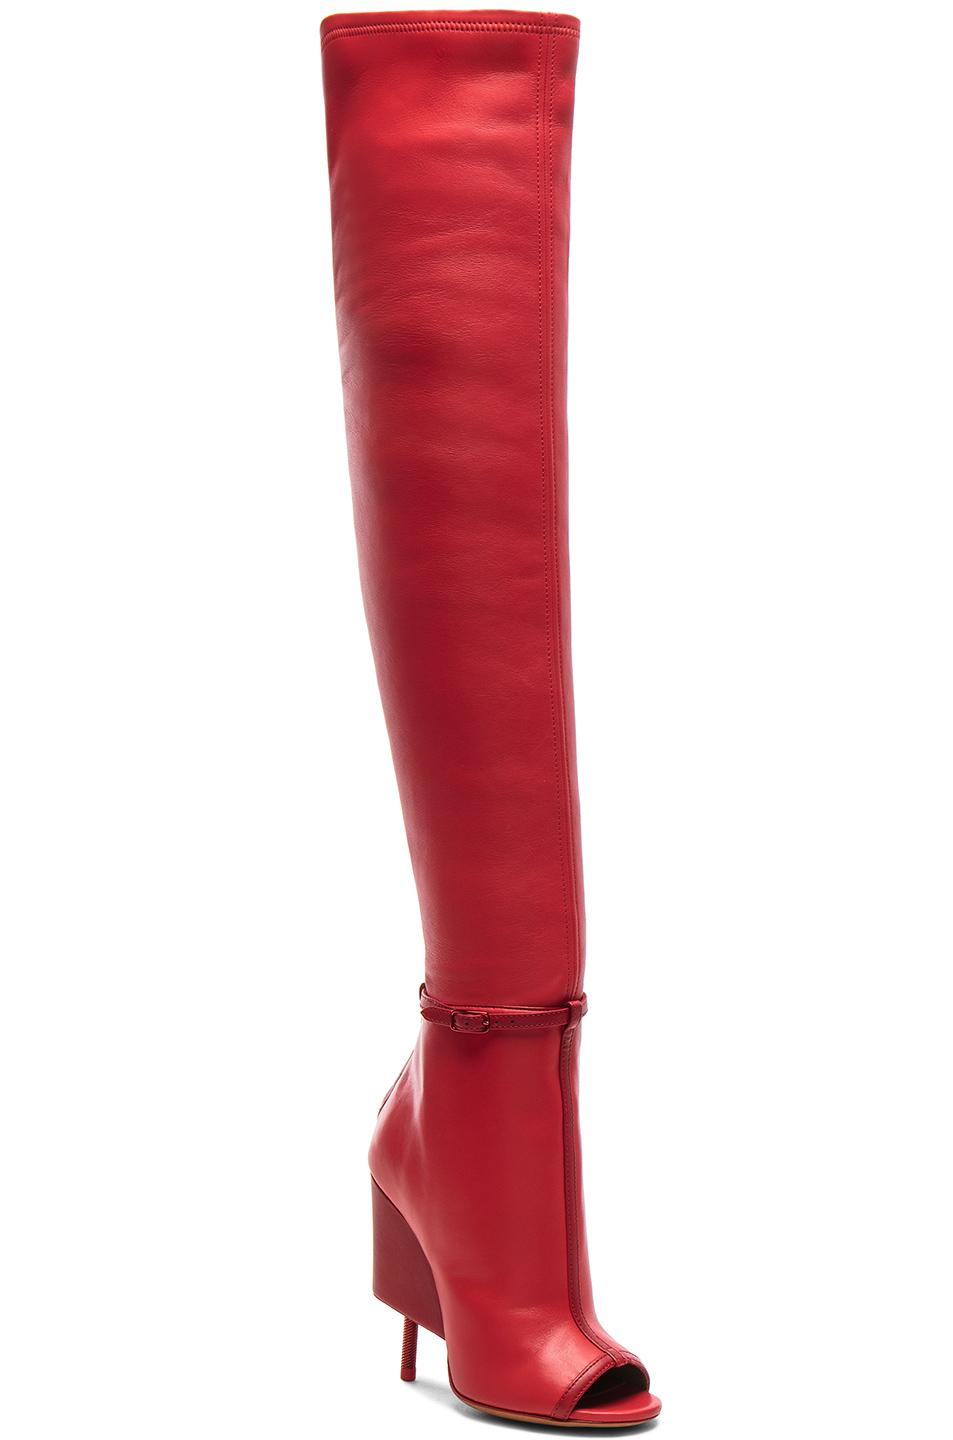 contrast toe thigh high boots - Brown Givenchy IWzv1g2OJG